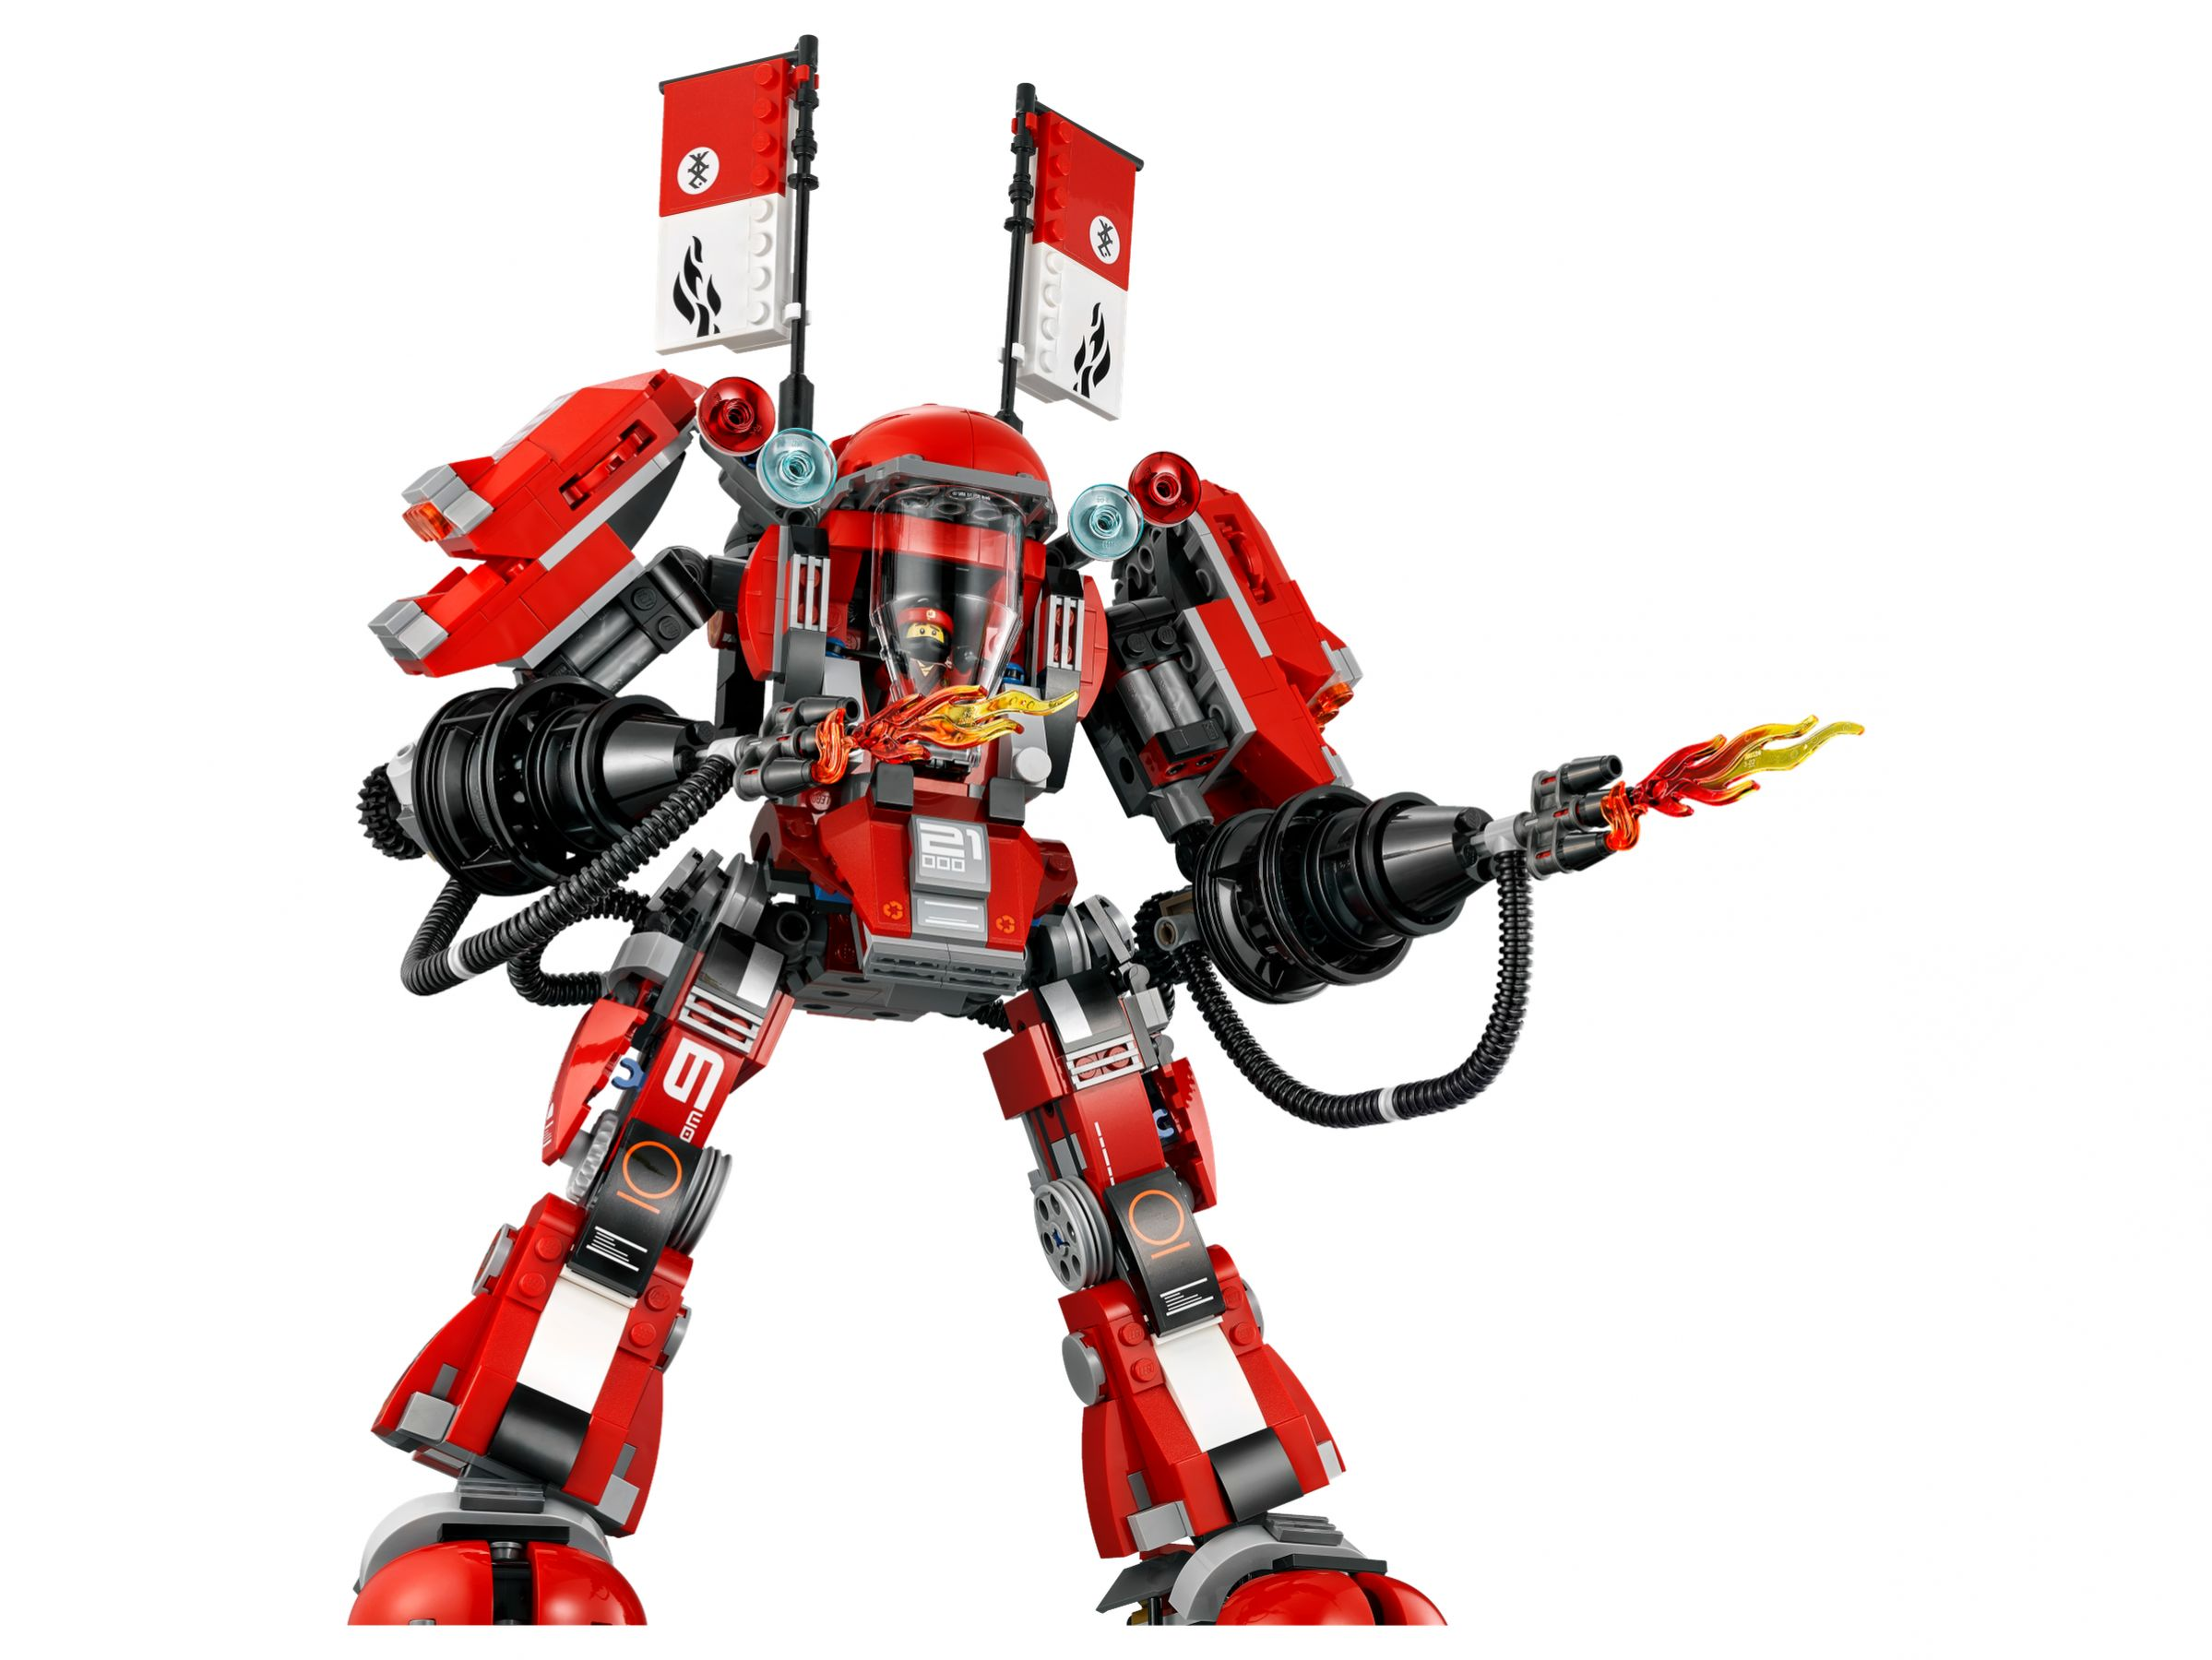 LEGO The LEGO Ninjago Movie 70615 Kai's Feuer-Mech LEGO_70615_alt3.jpg